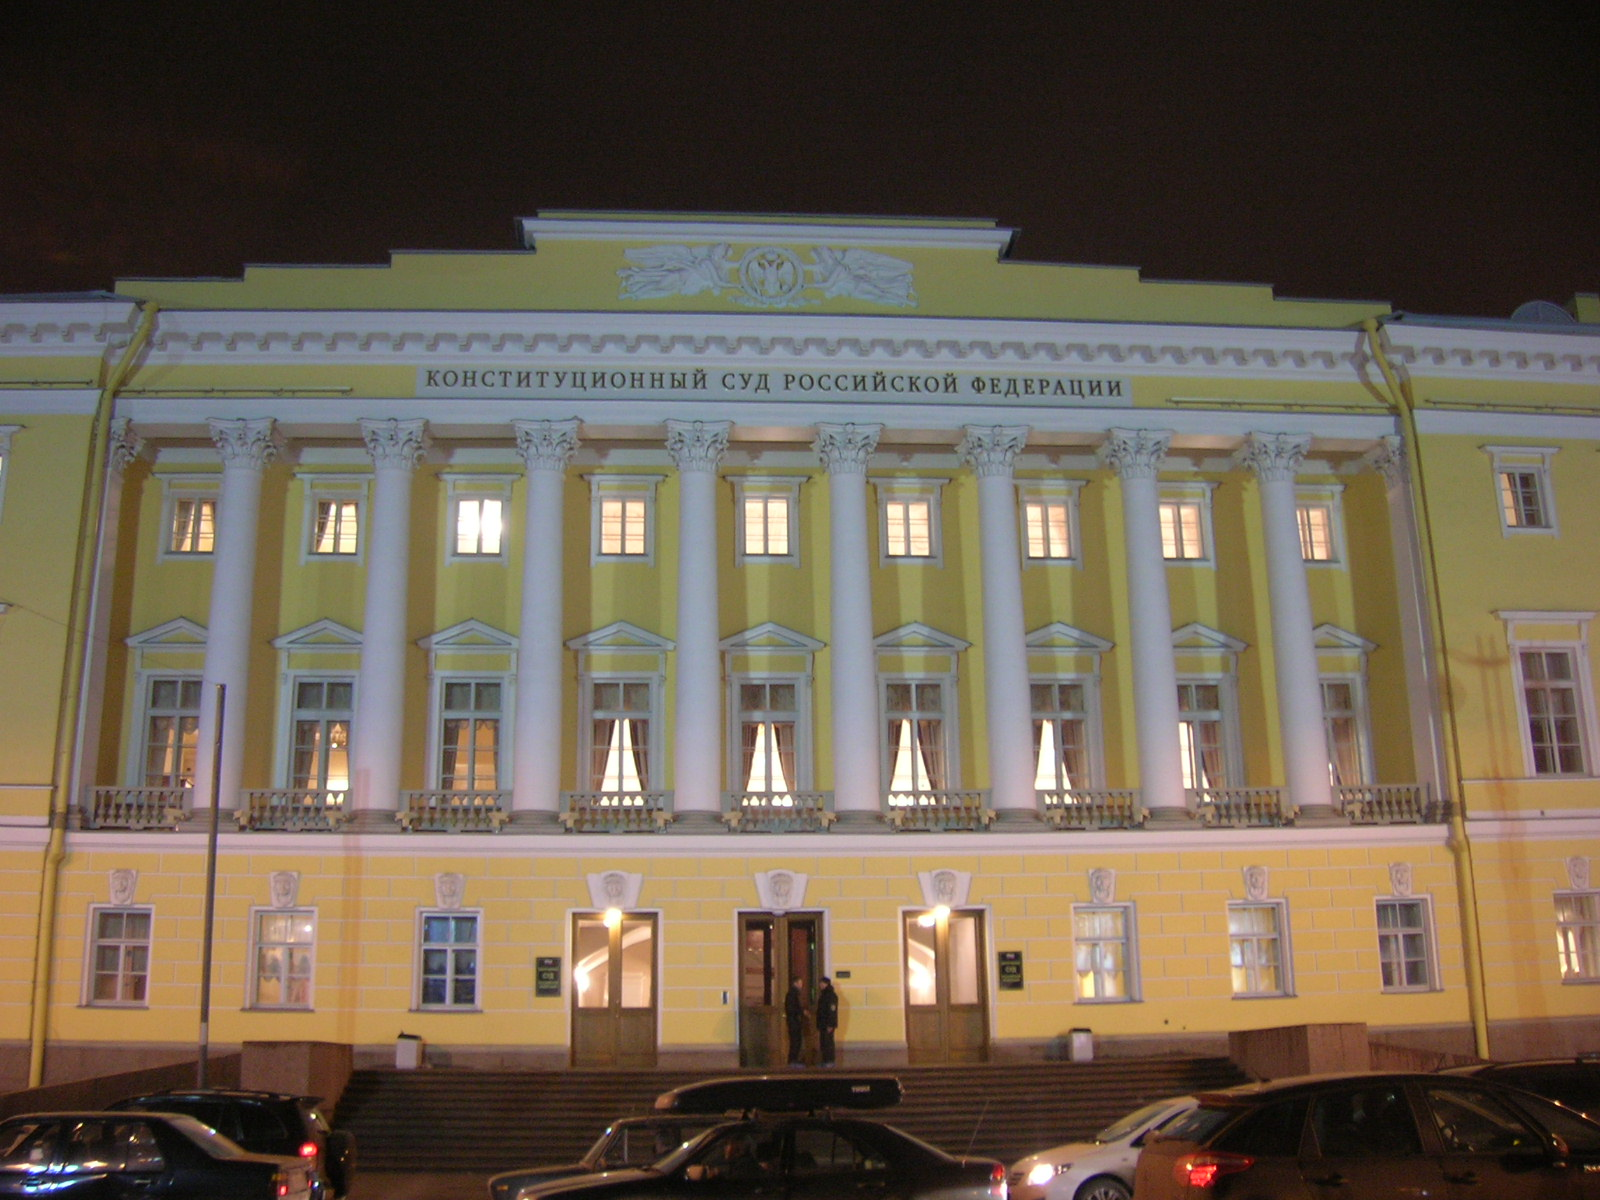 Russian court calls for stricter domestic violence laws